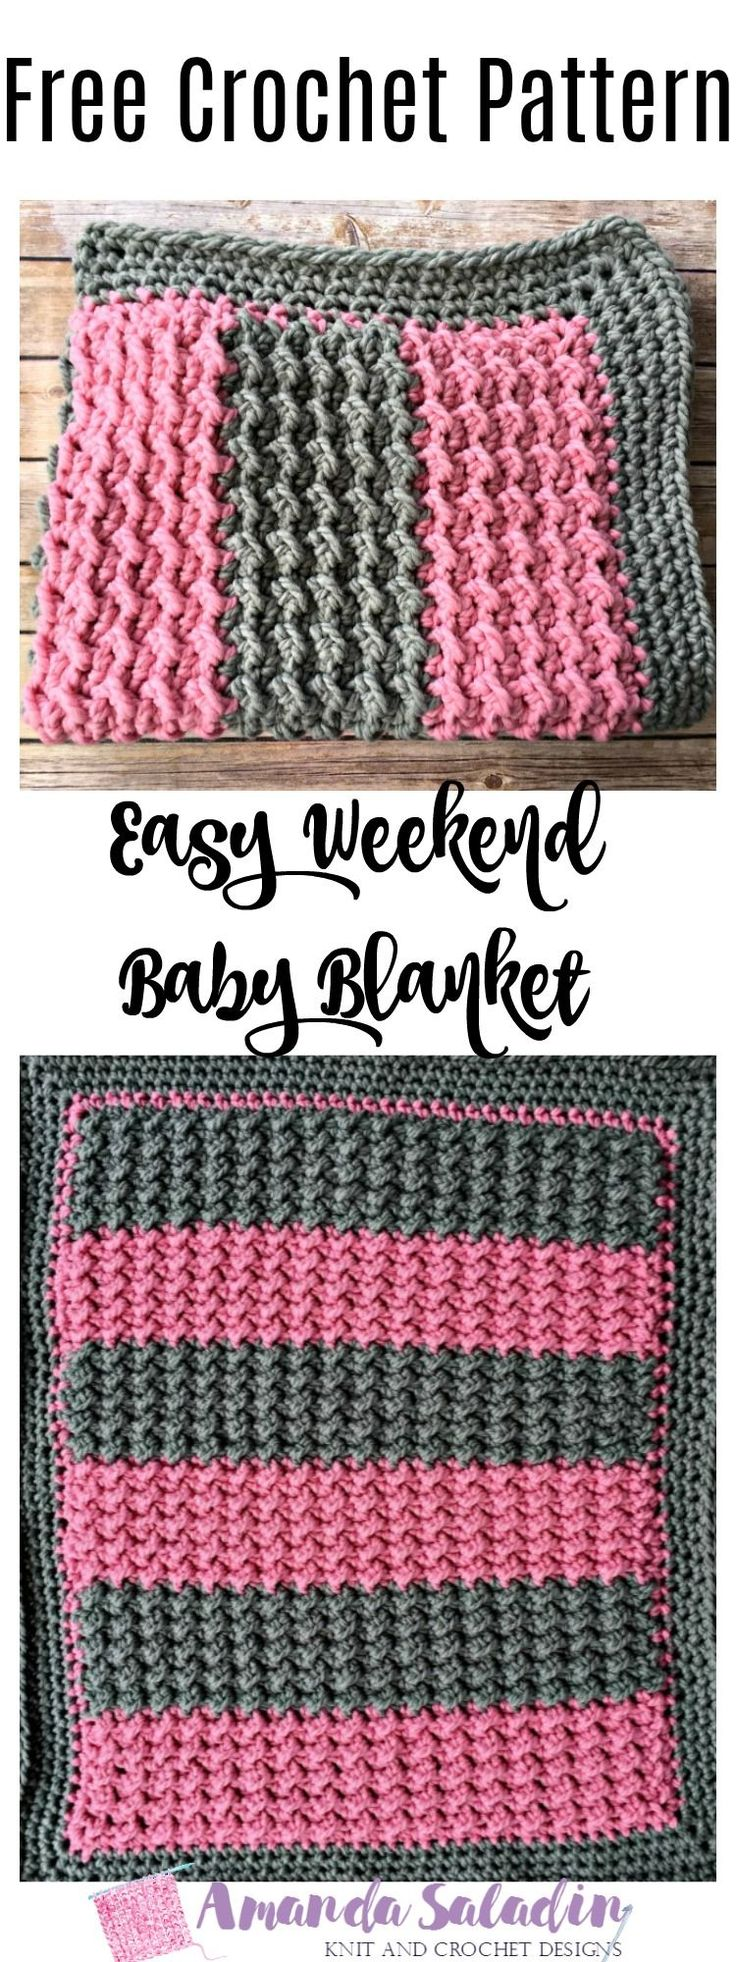 This baby blanket can be worked up amazingly quickly - that's why it's called the Easy Weekend Baby Blanket! Uses 600 yards of super bulky yarn.